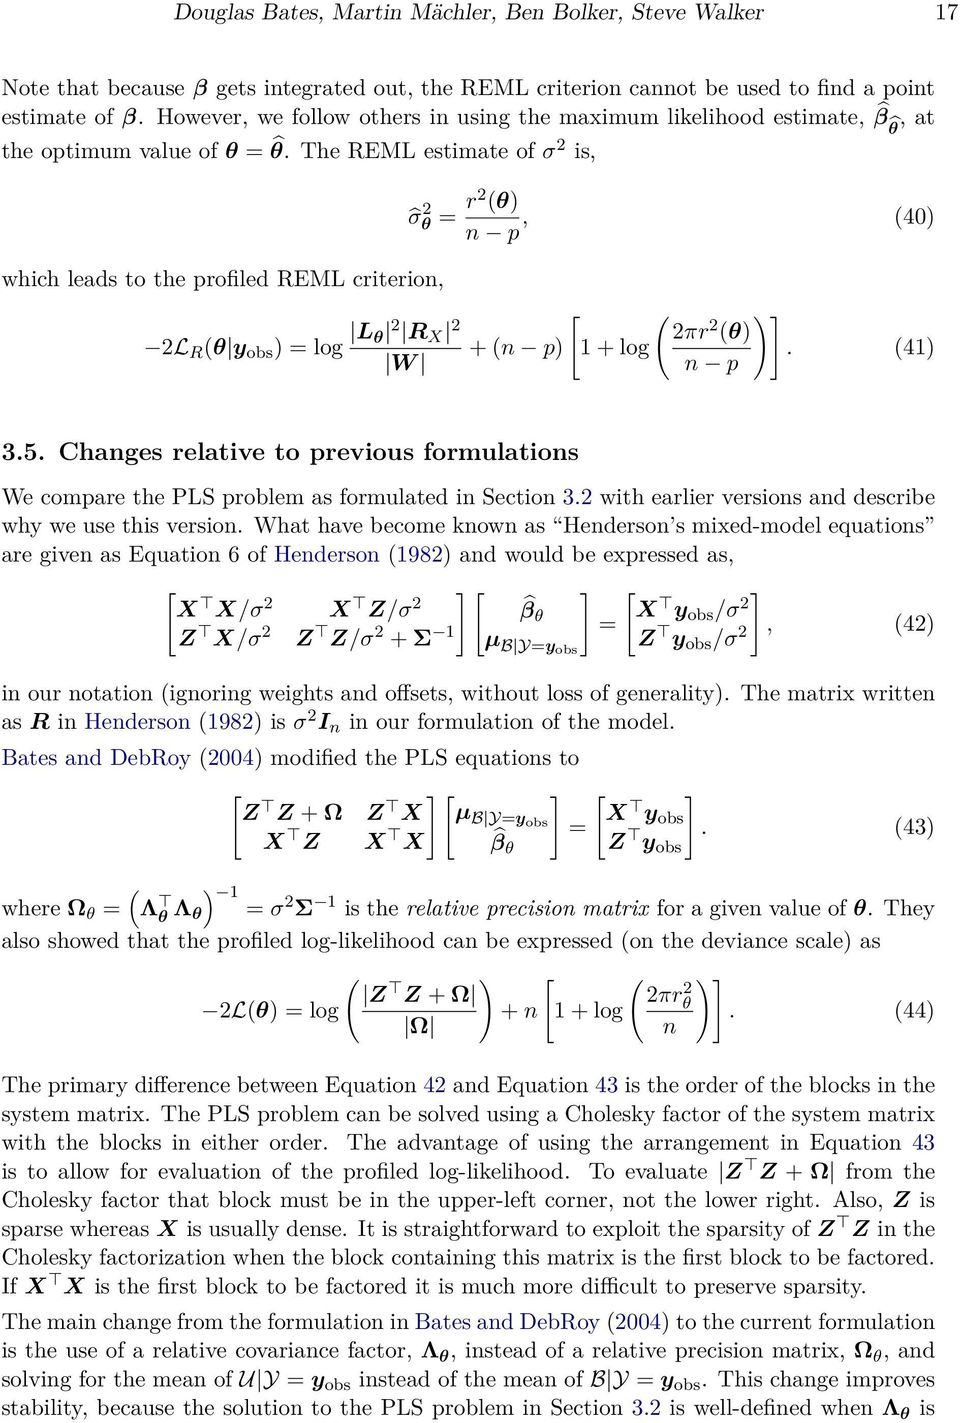 Fitting Linear Mixed-Effects Models using lme4 - PDF